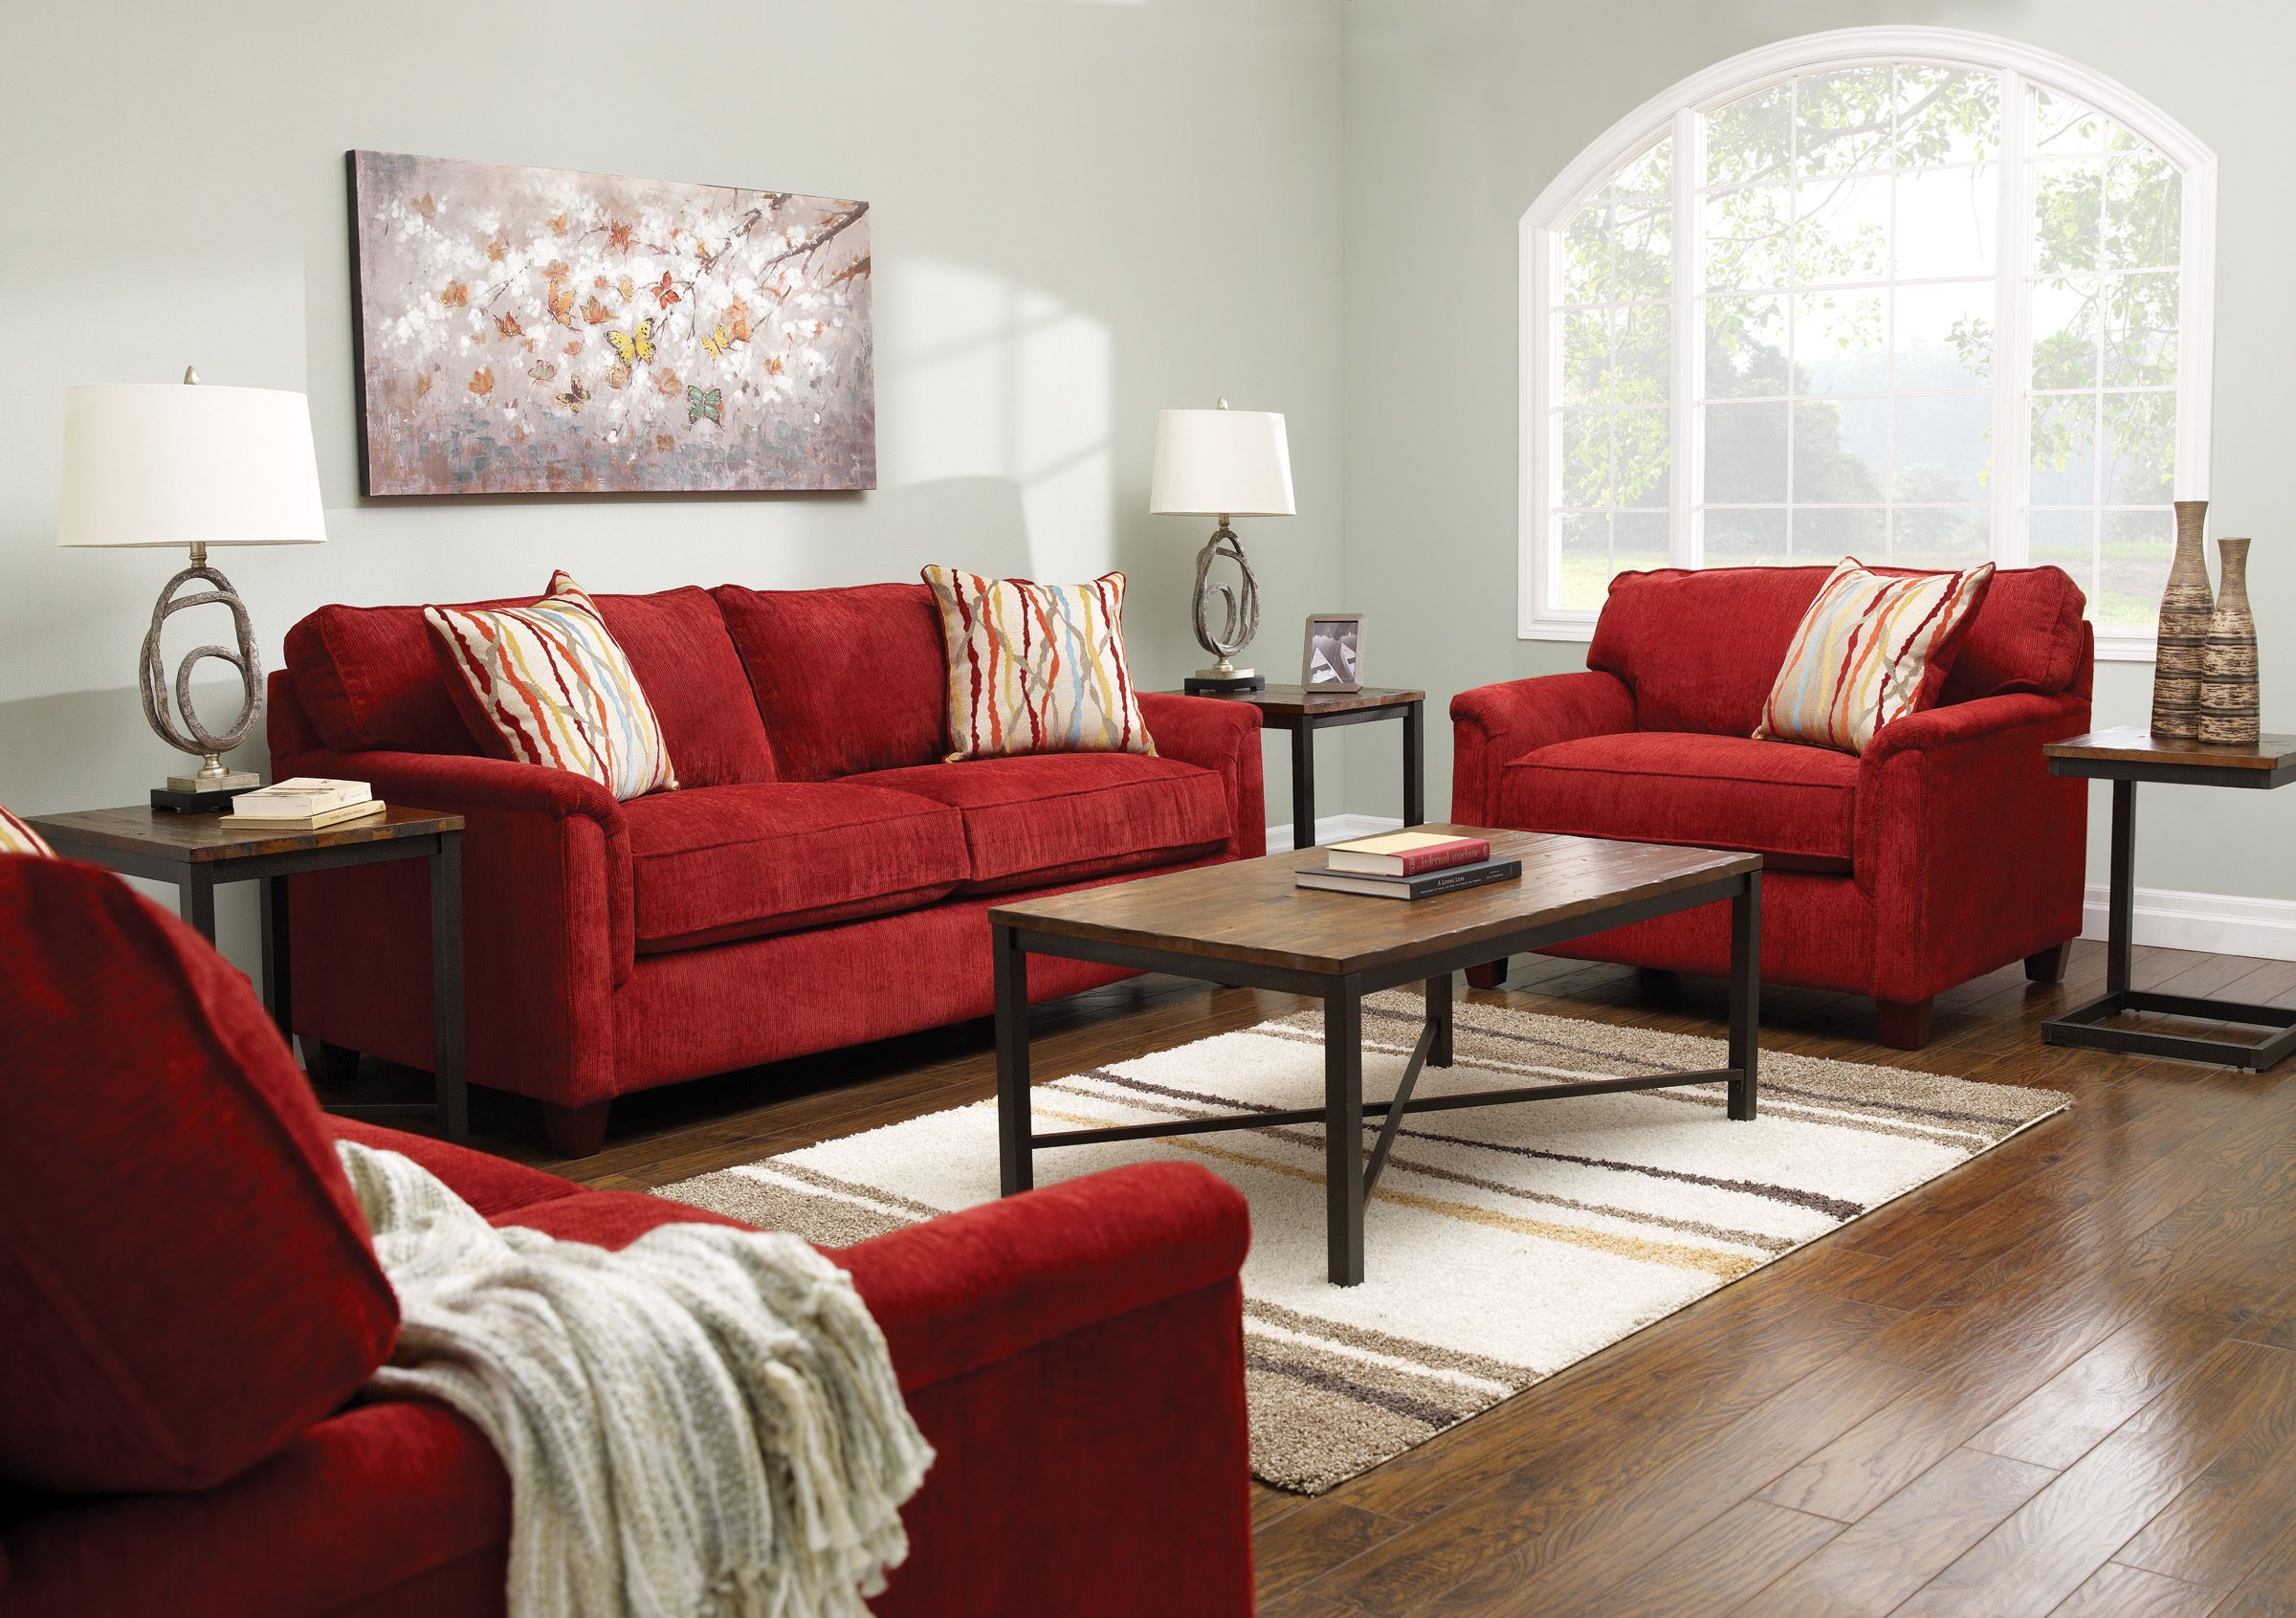 Quot Amazing Quot Scarlet Collection From United Furniture The